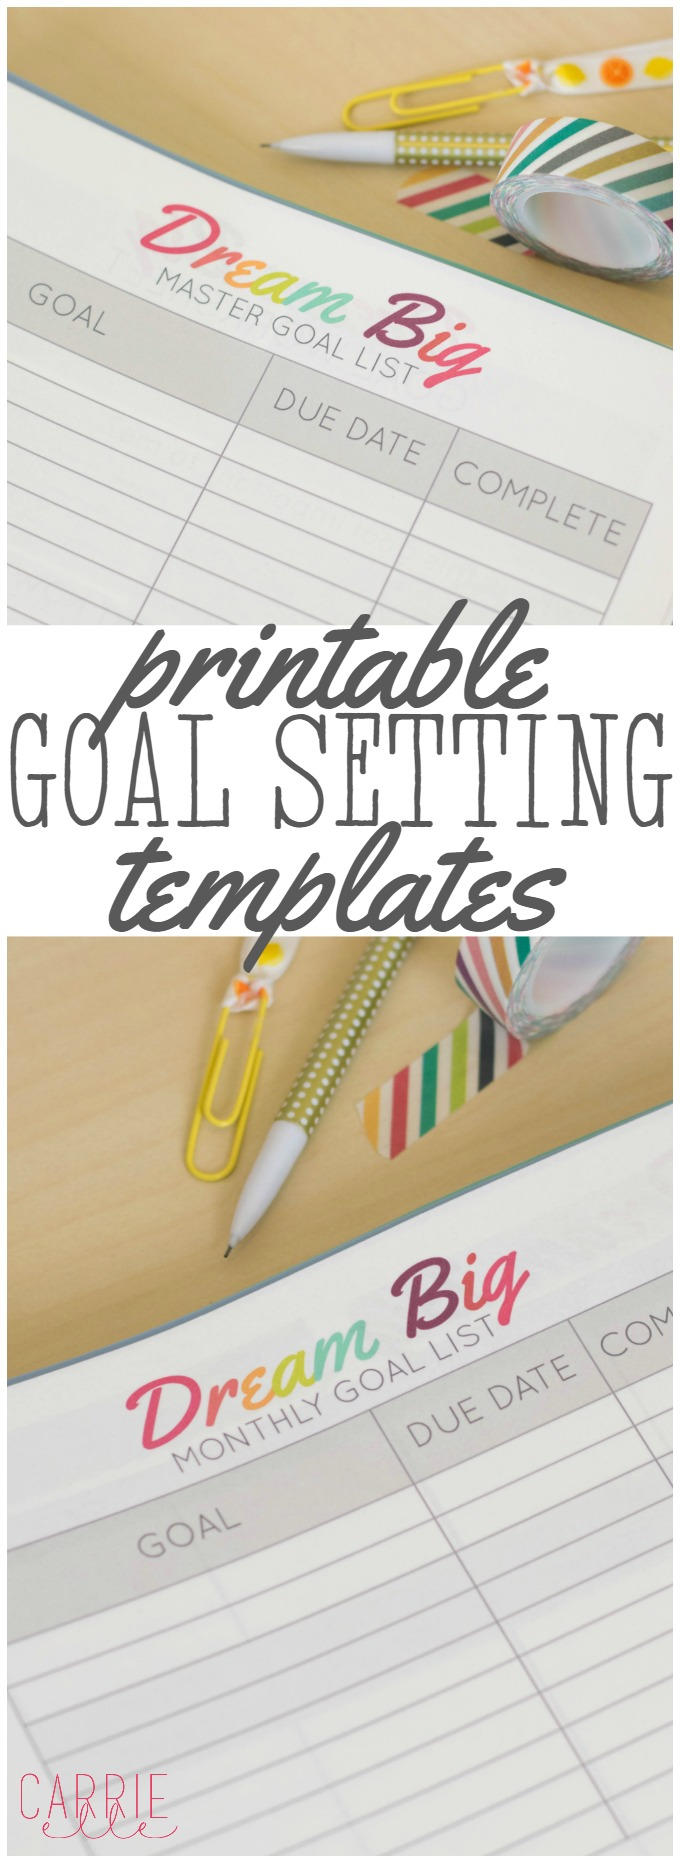 printable goal setting template carrie elle. Black Bedroom Furniture Sets. Home Design Ideas